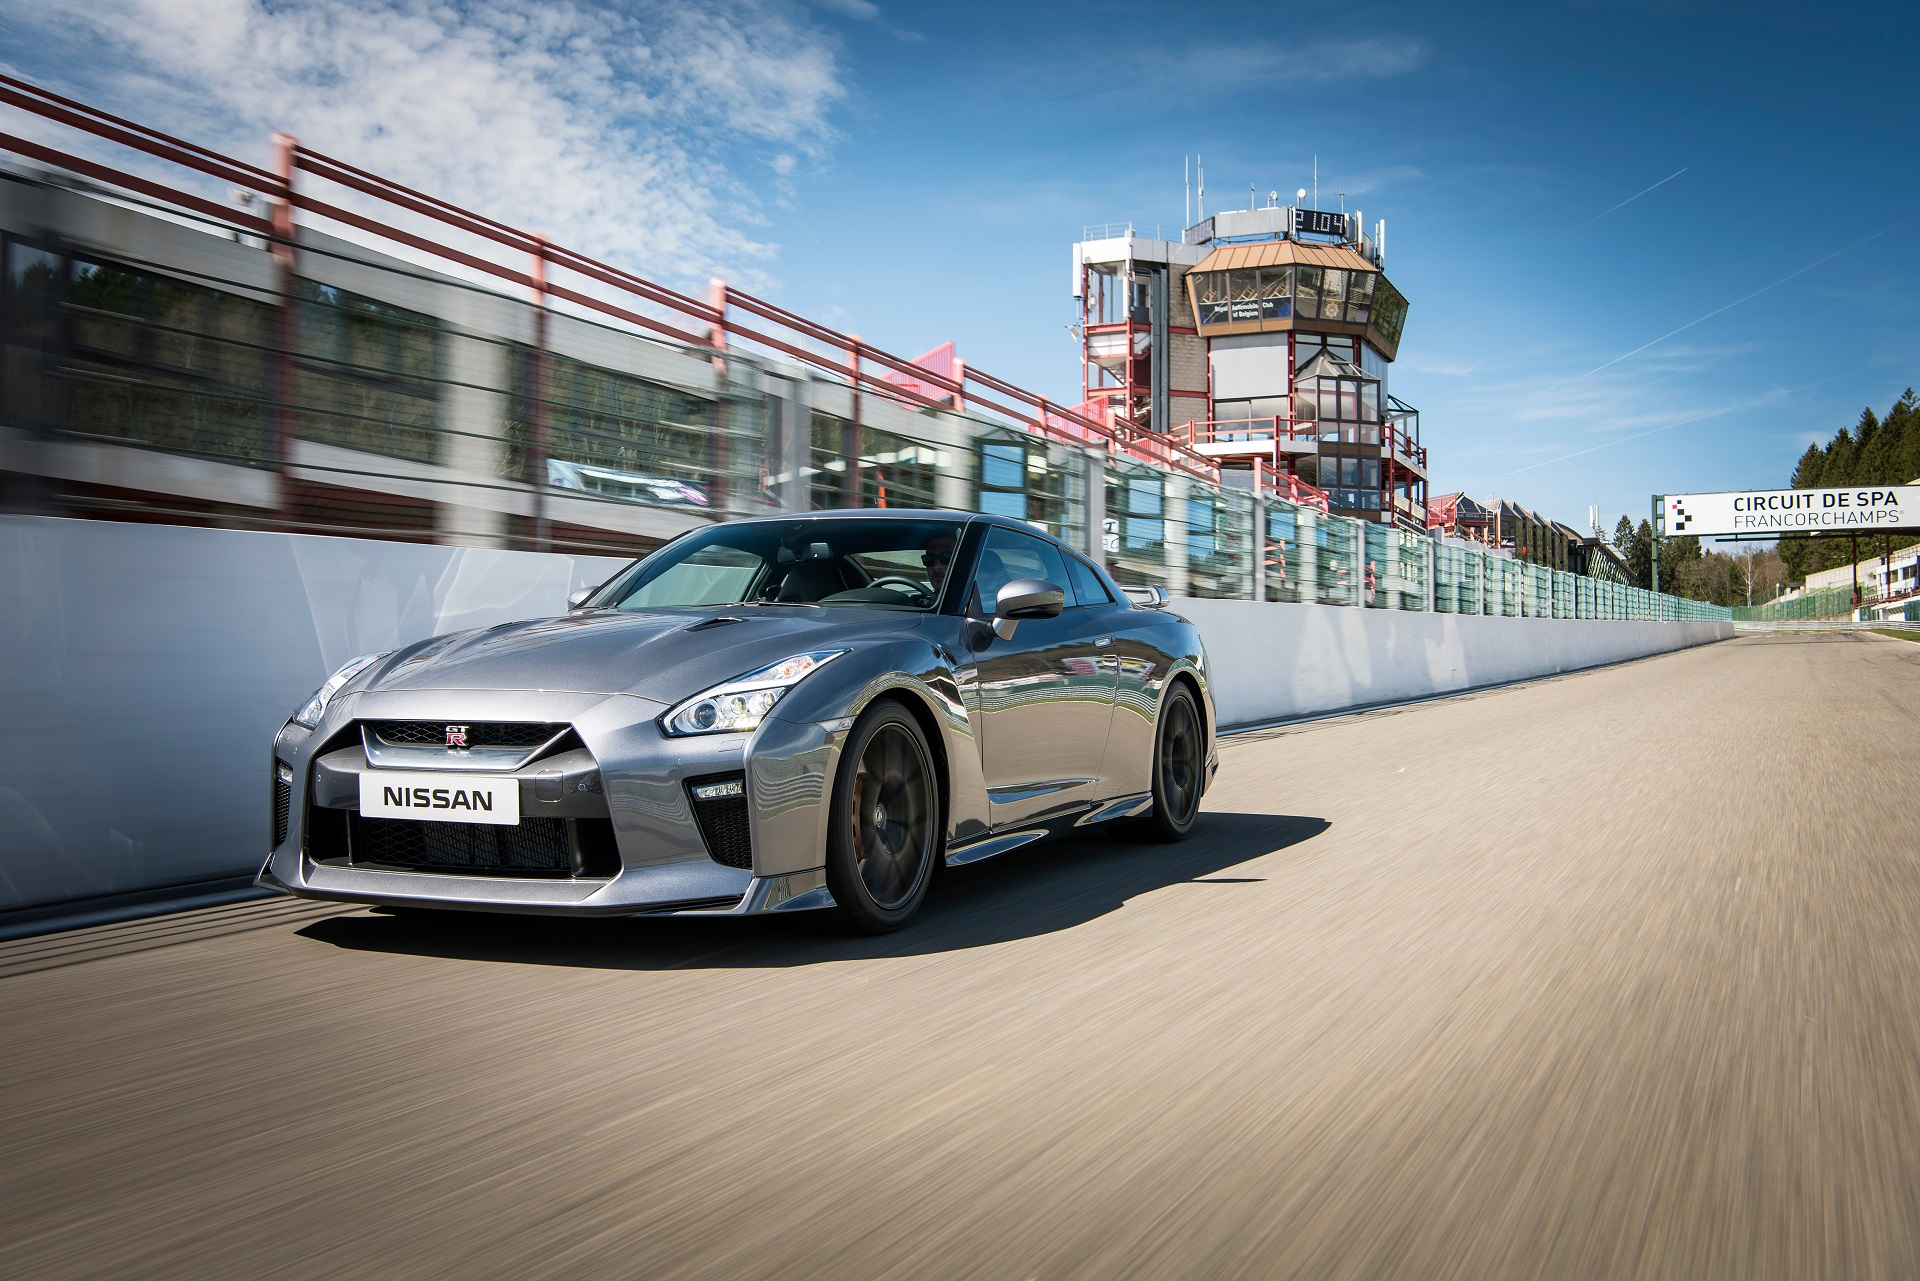 2017 Nissan Gt R Detailed In New Video And Photos